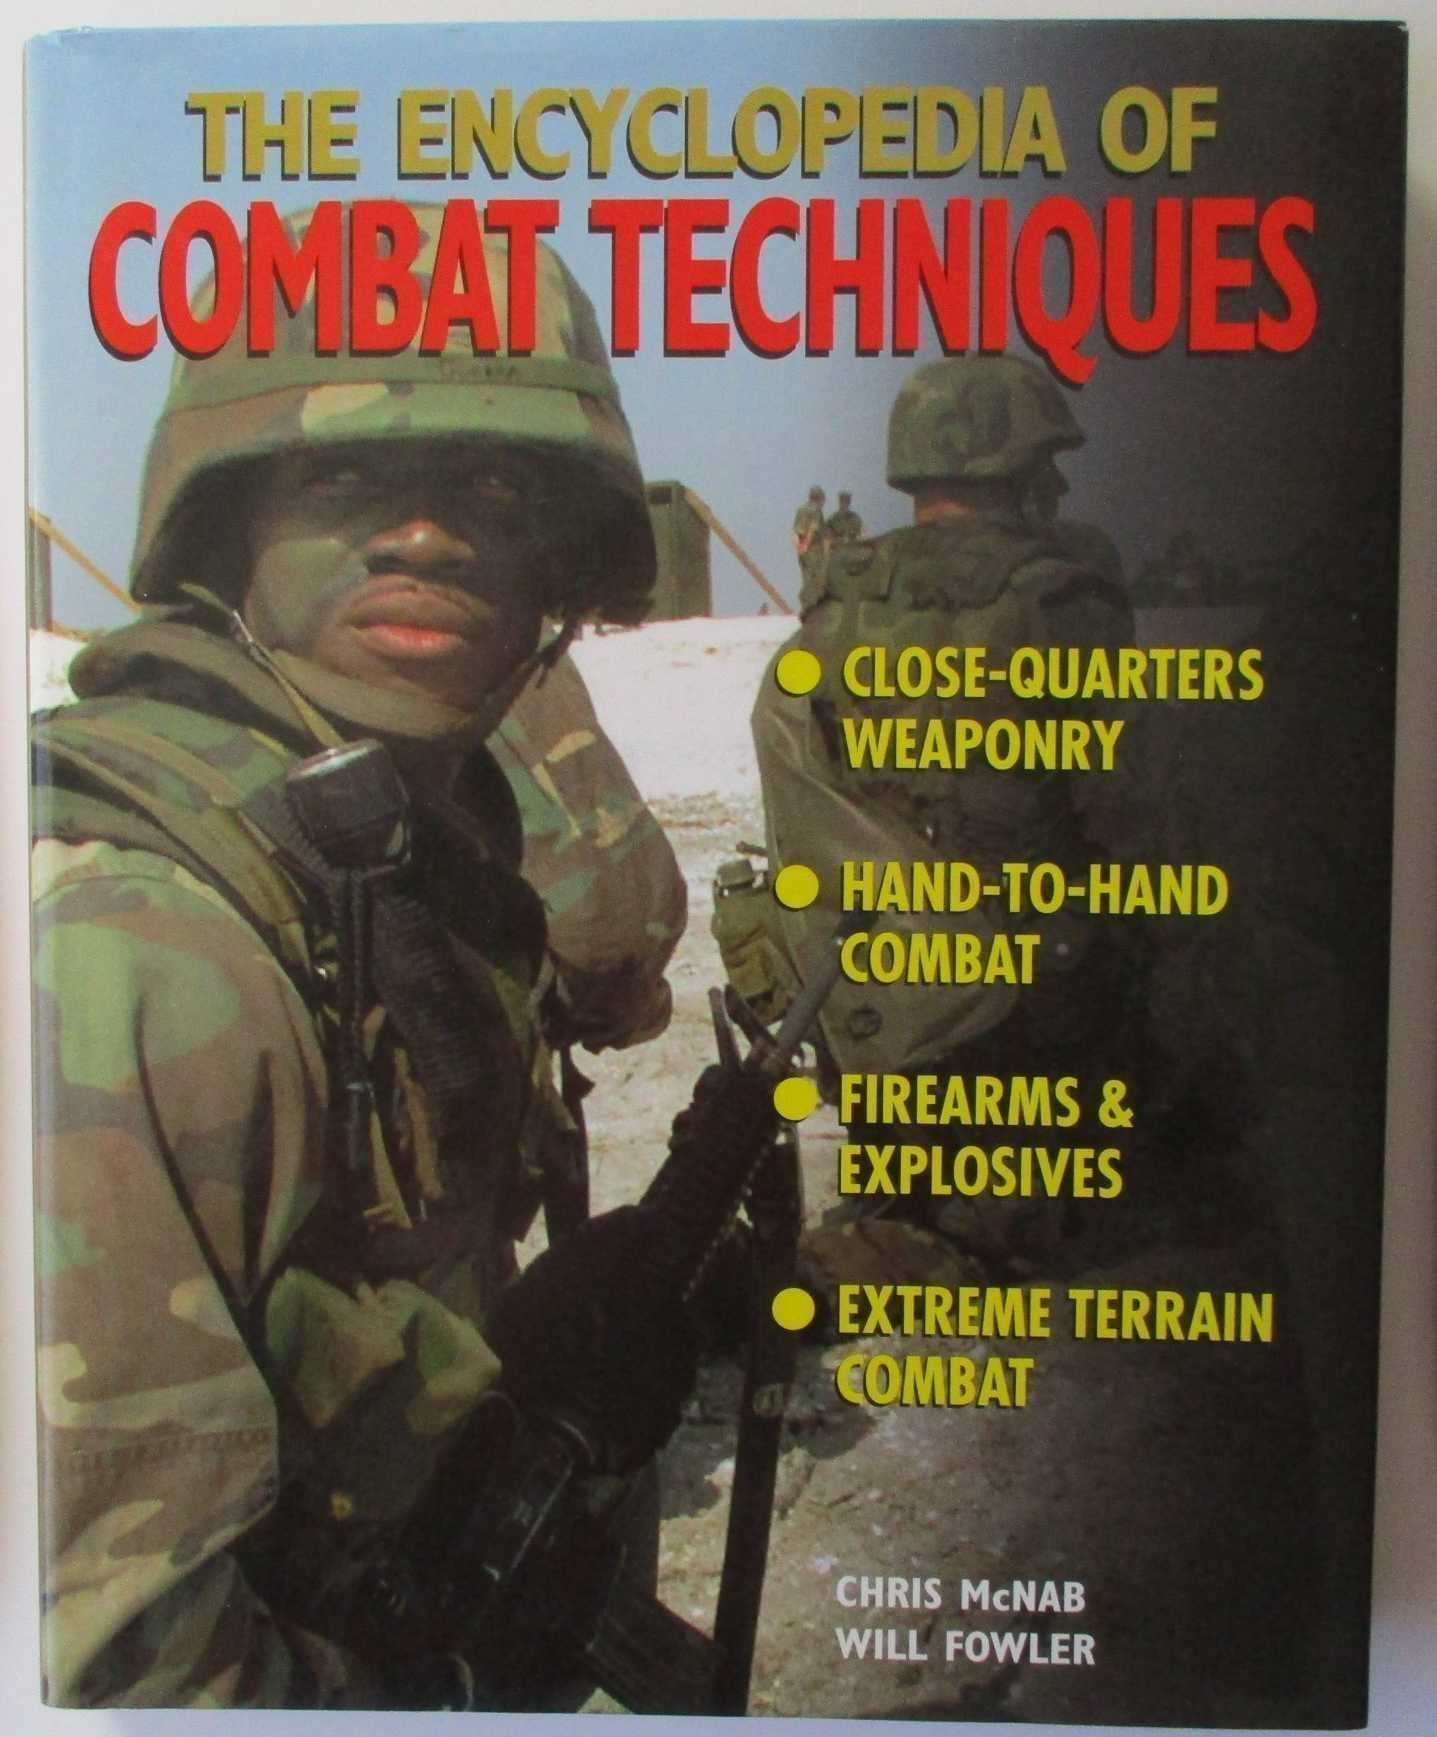 The Encylopedia of Combat Techniques - Chris McNab, Will Fowler